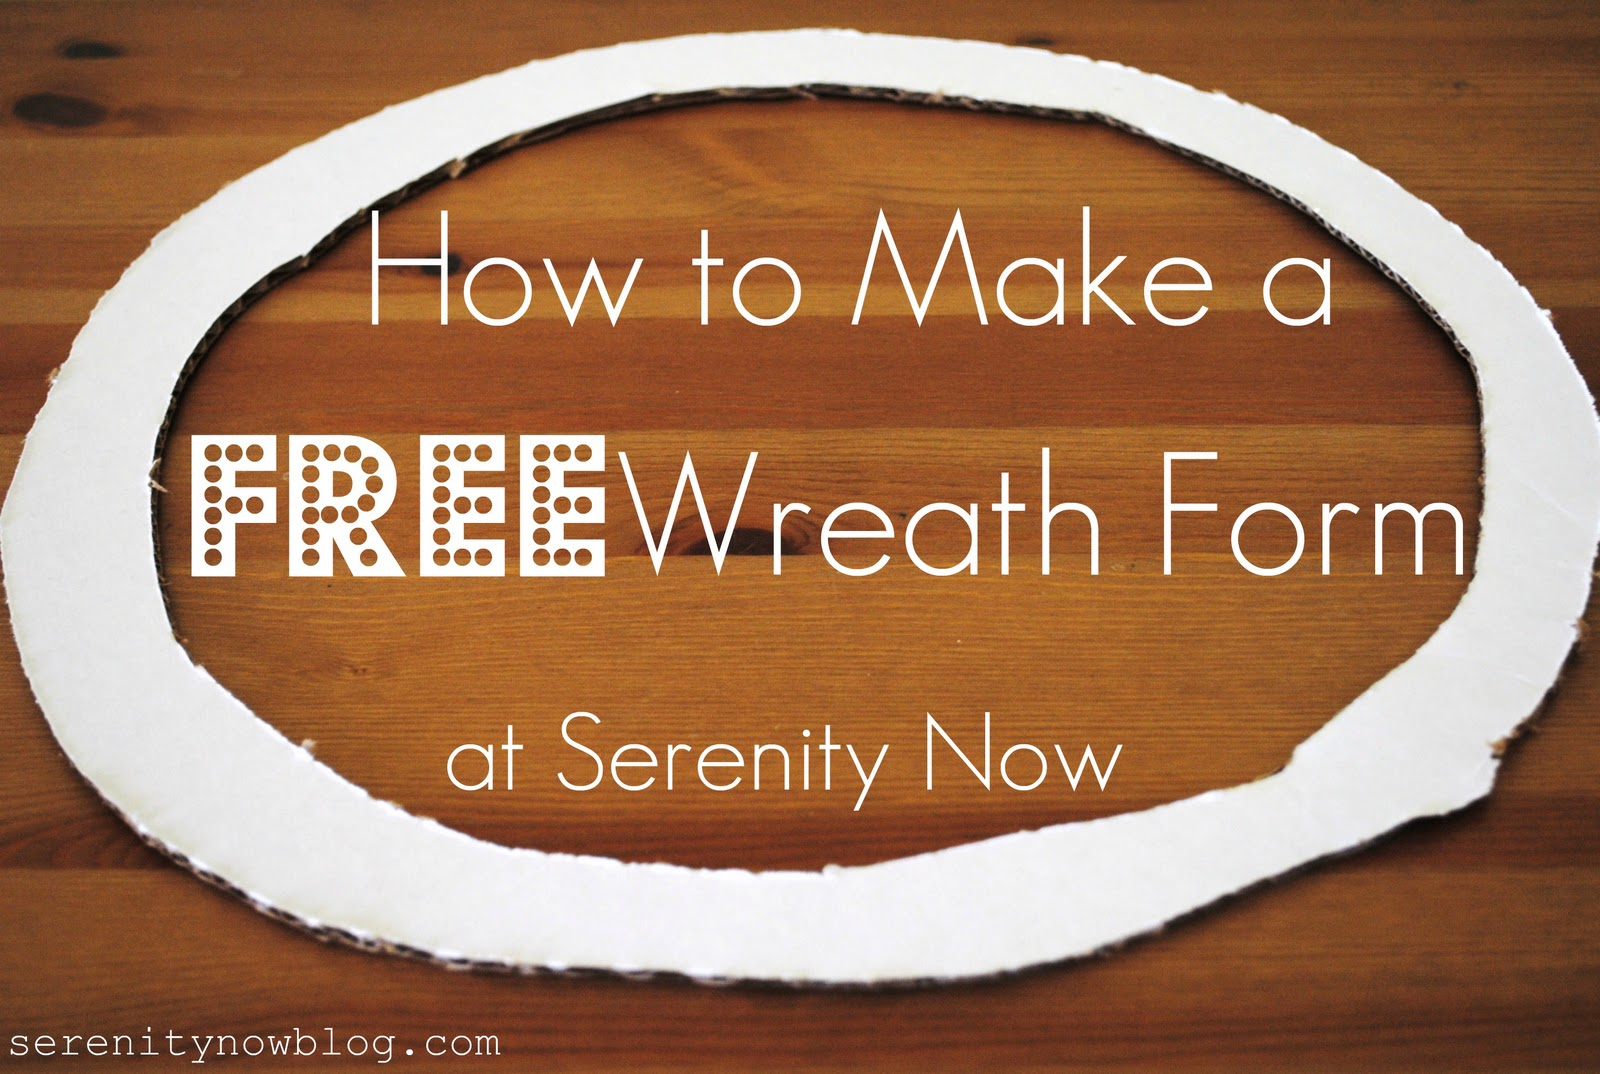 Serenity Now: How to Make a Free Wreath Form